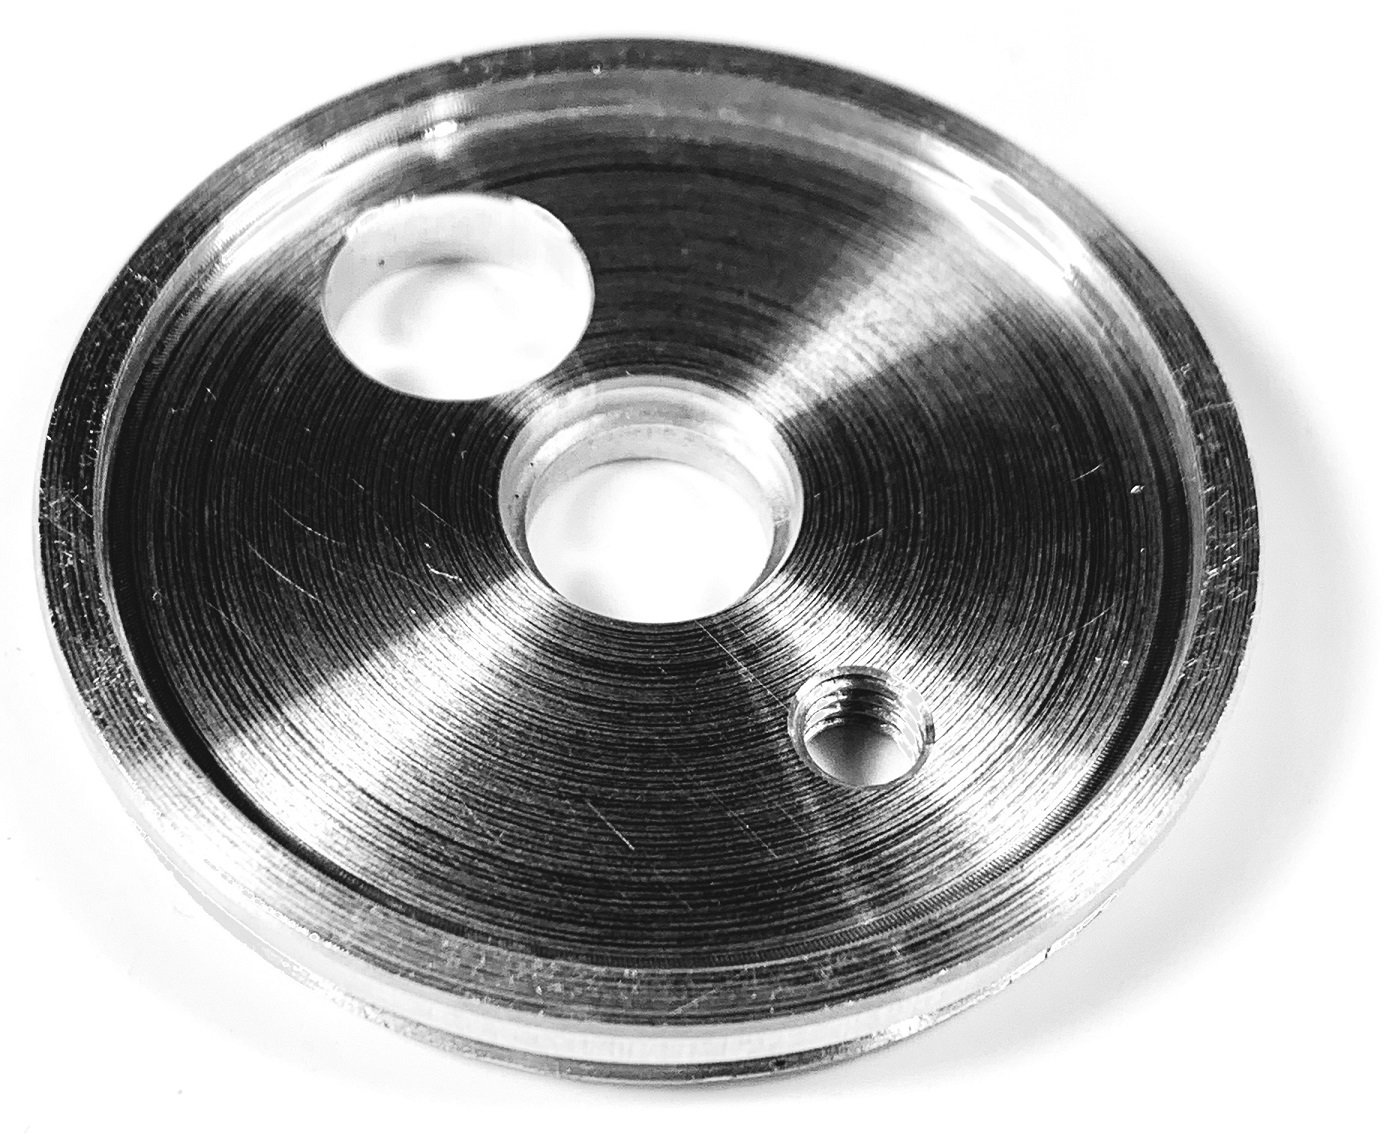 ape-labs-m6-threaded-bottom-plate-for-can.jpeg